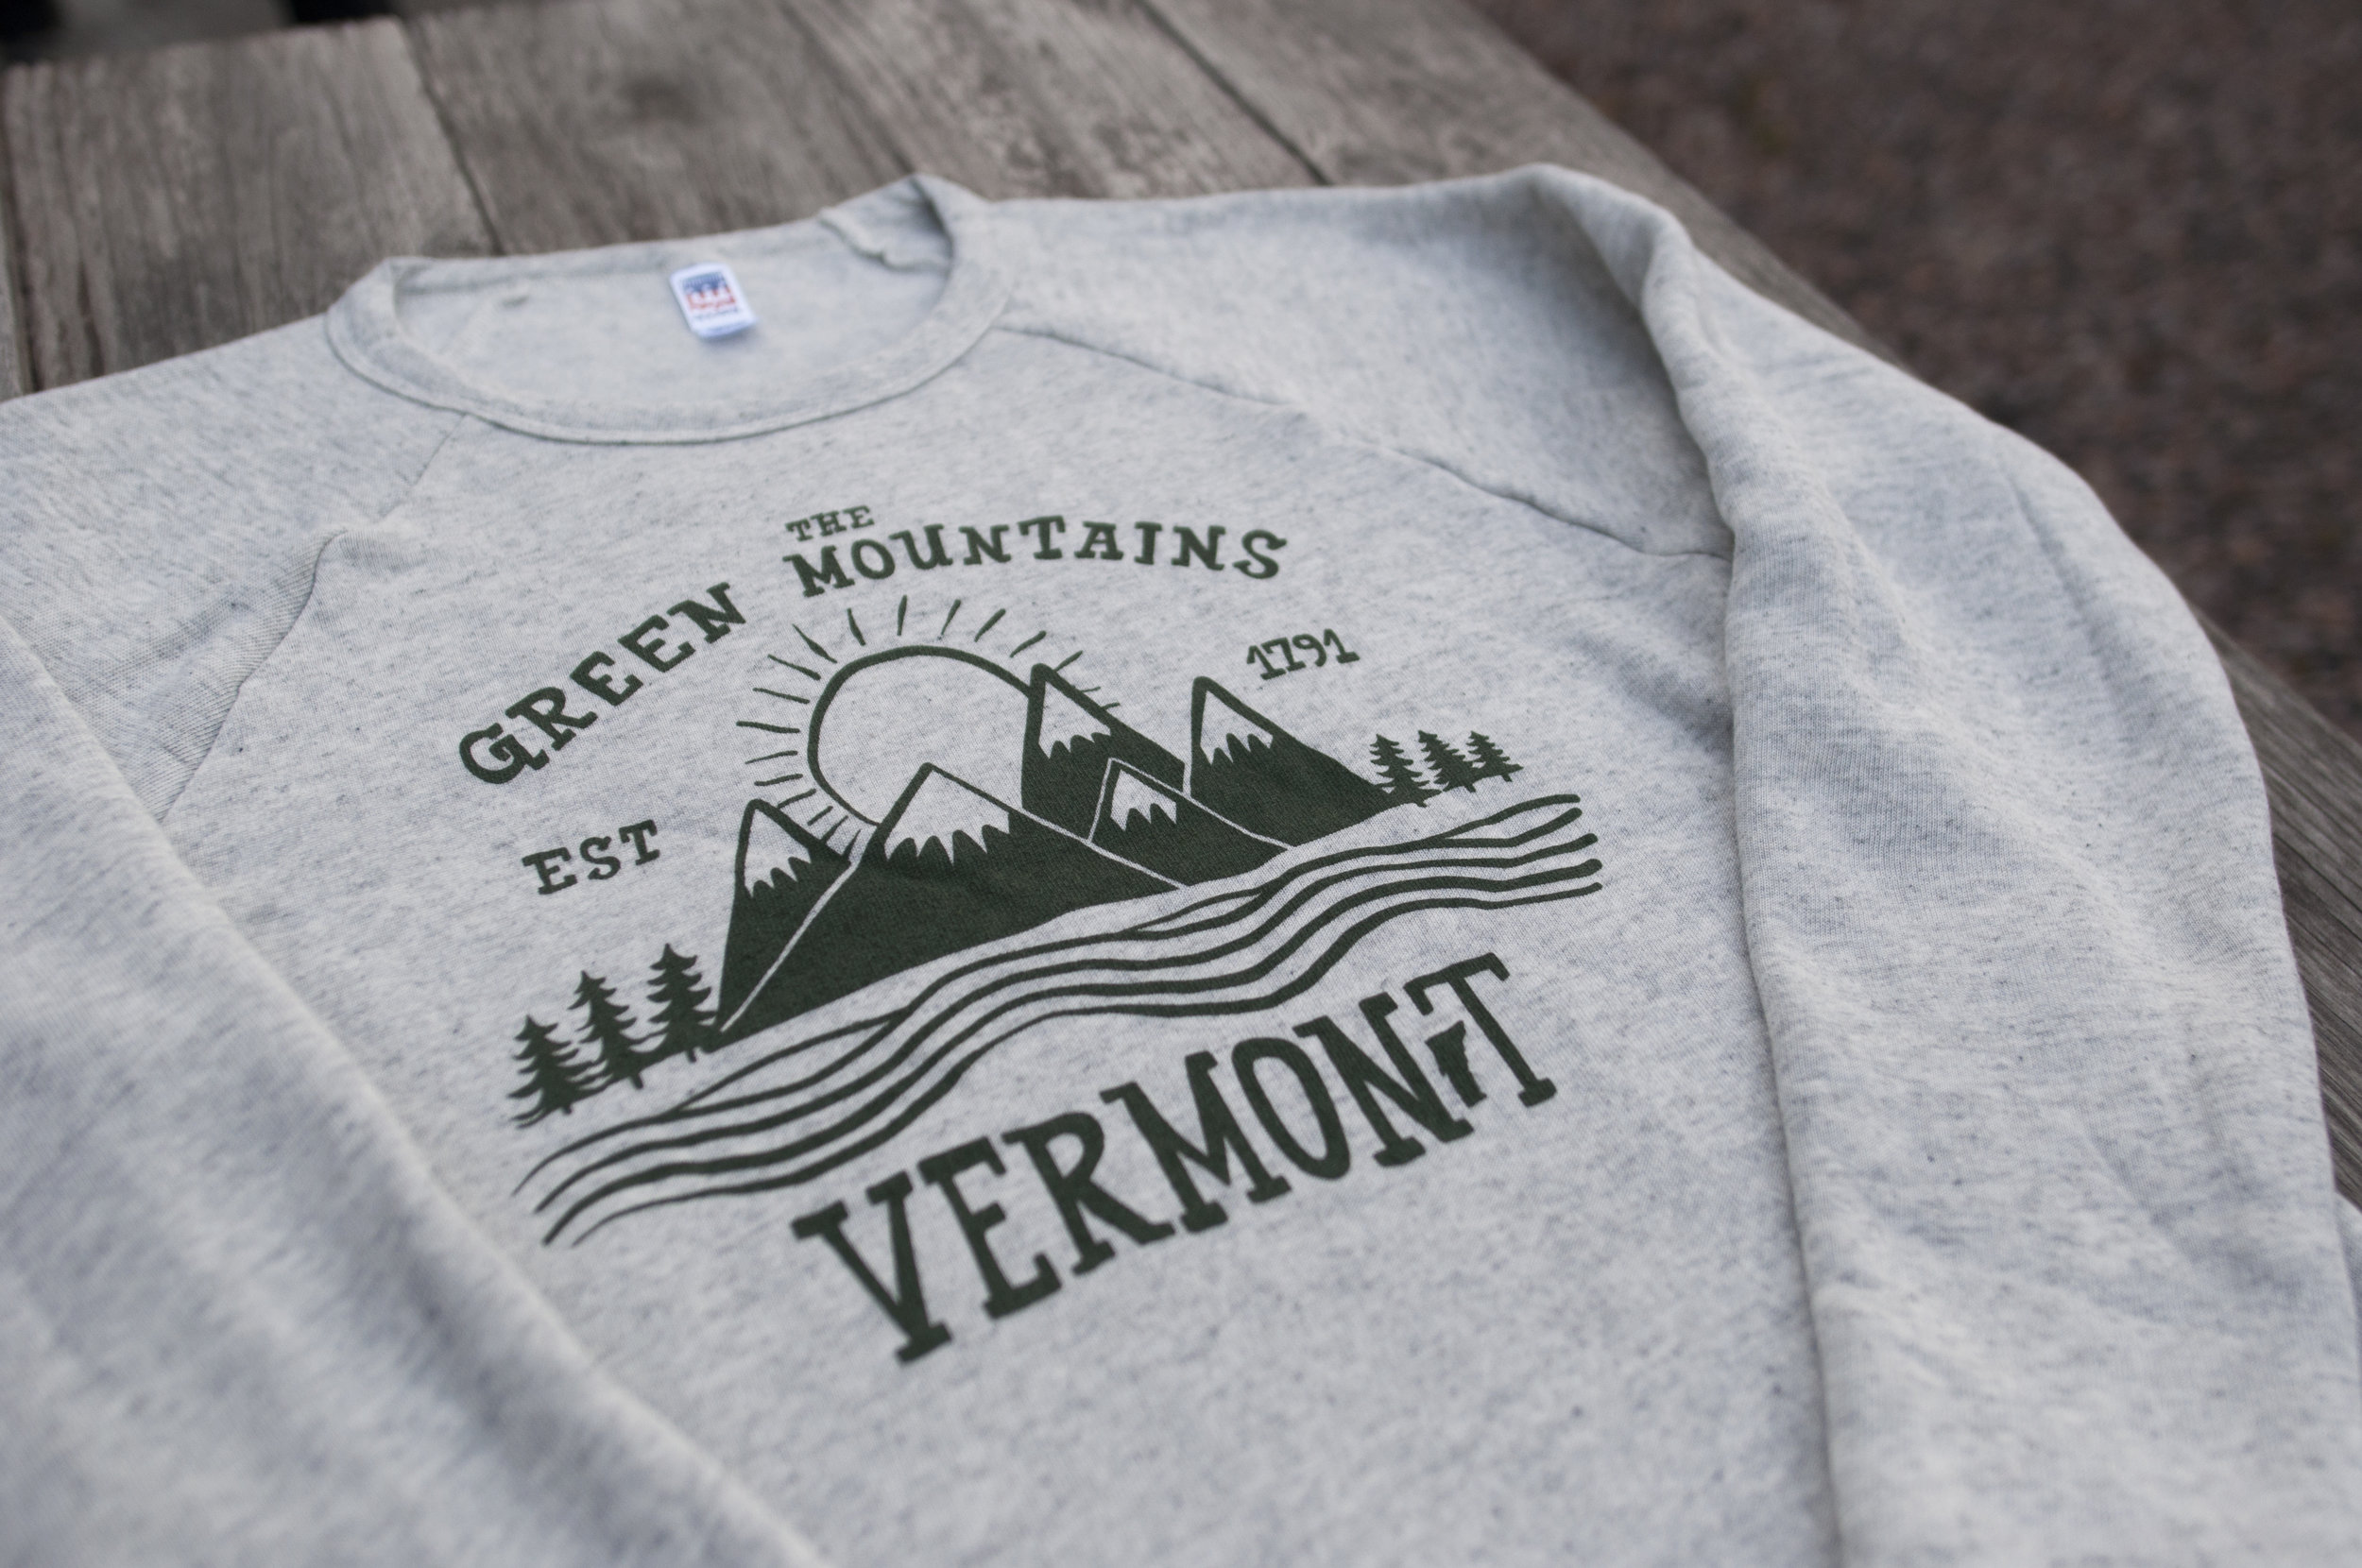 O ur new crew neck sweatshirt featuring our favorite mountains!